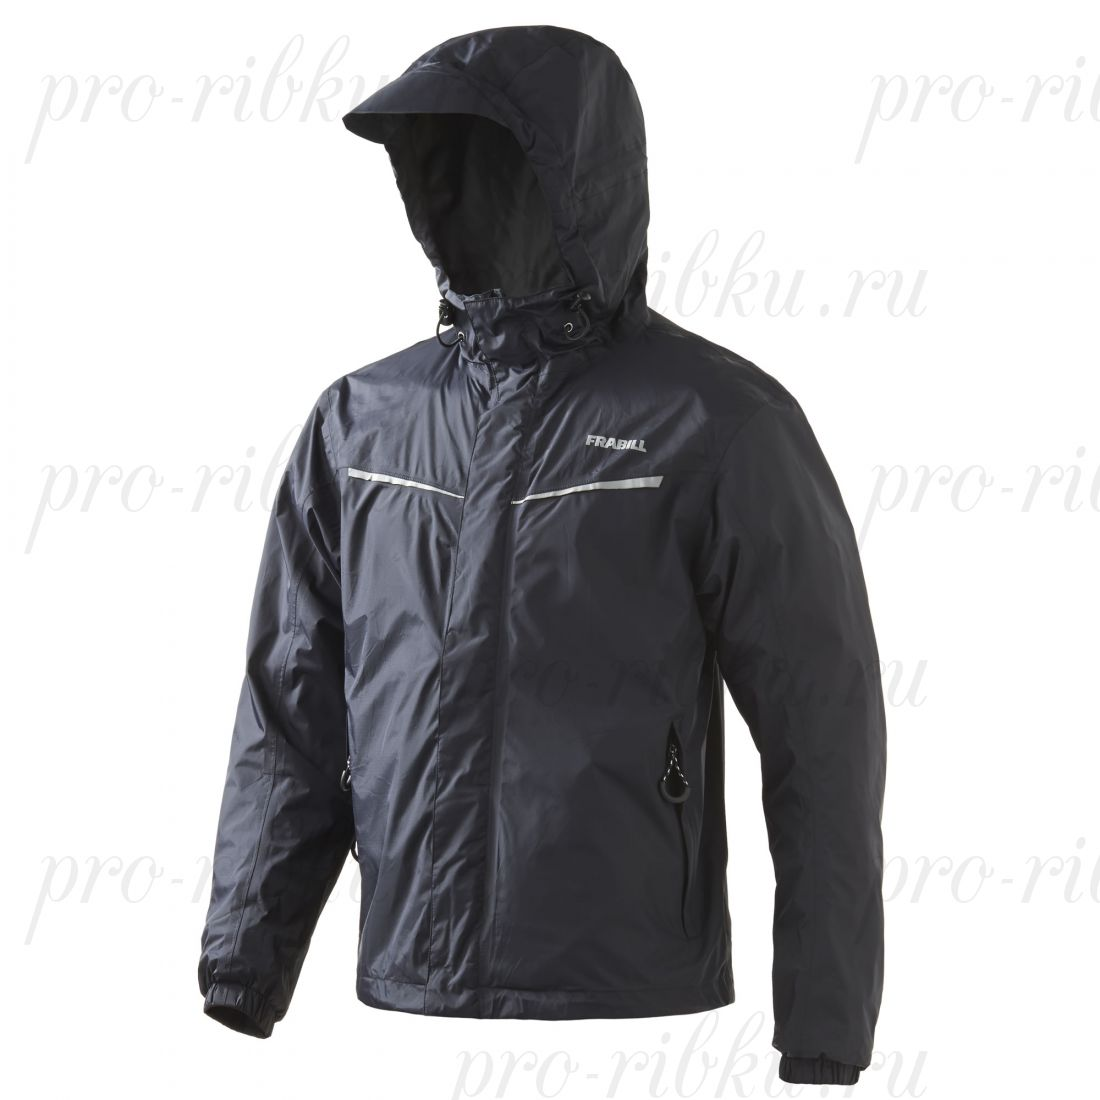 Куртка штормовая FRABILL Stow Jacket LT Brown, р. L